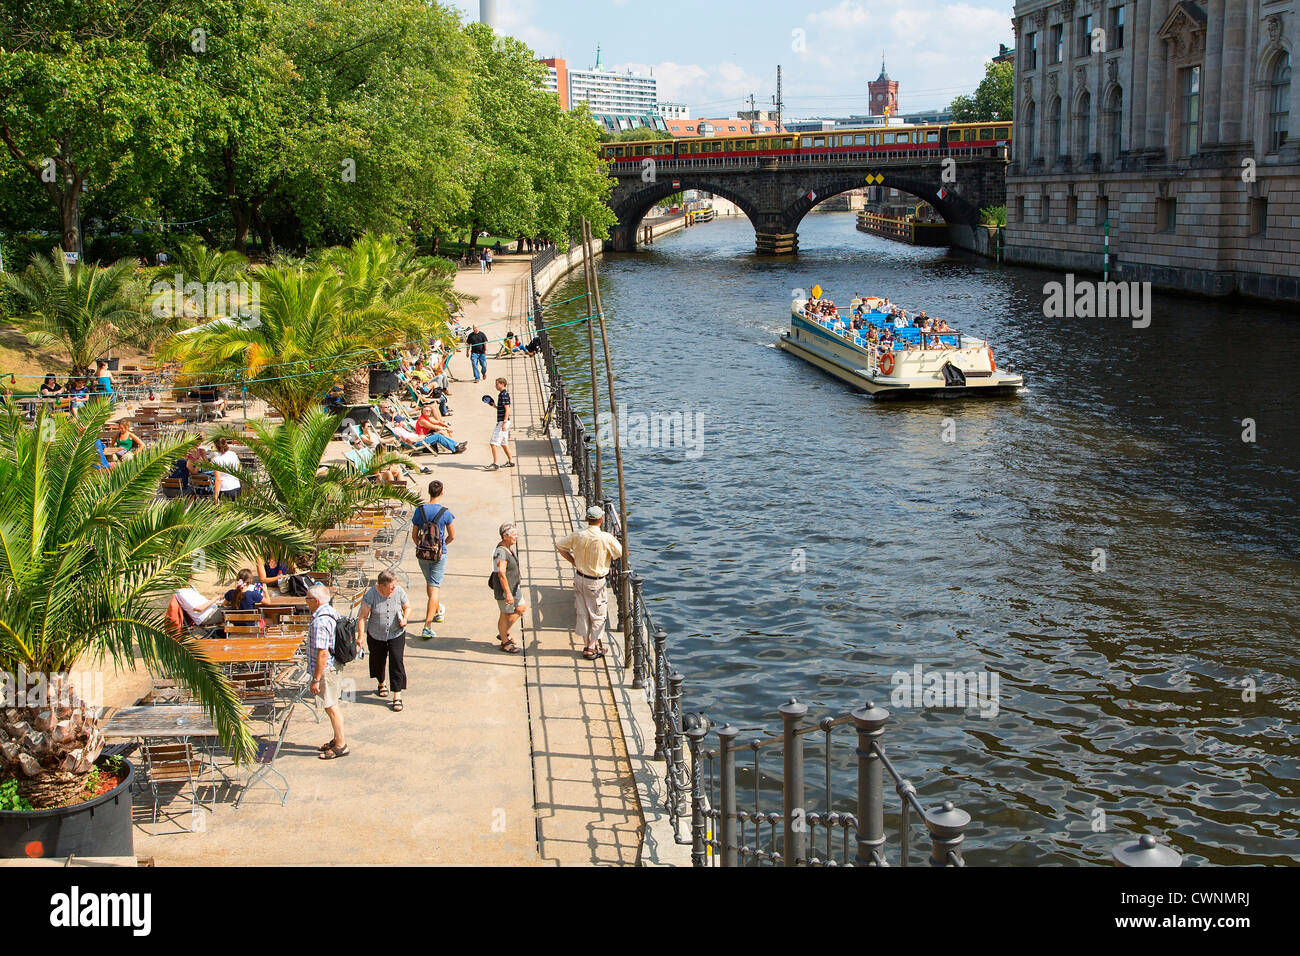 Europe, Germany, Berlin, Riverside cafe overlooking the River Spree - Stock Image